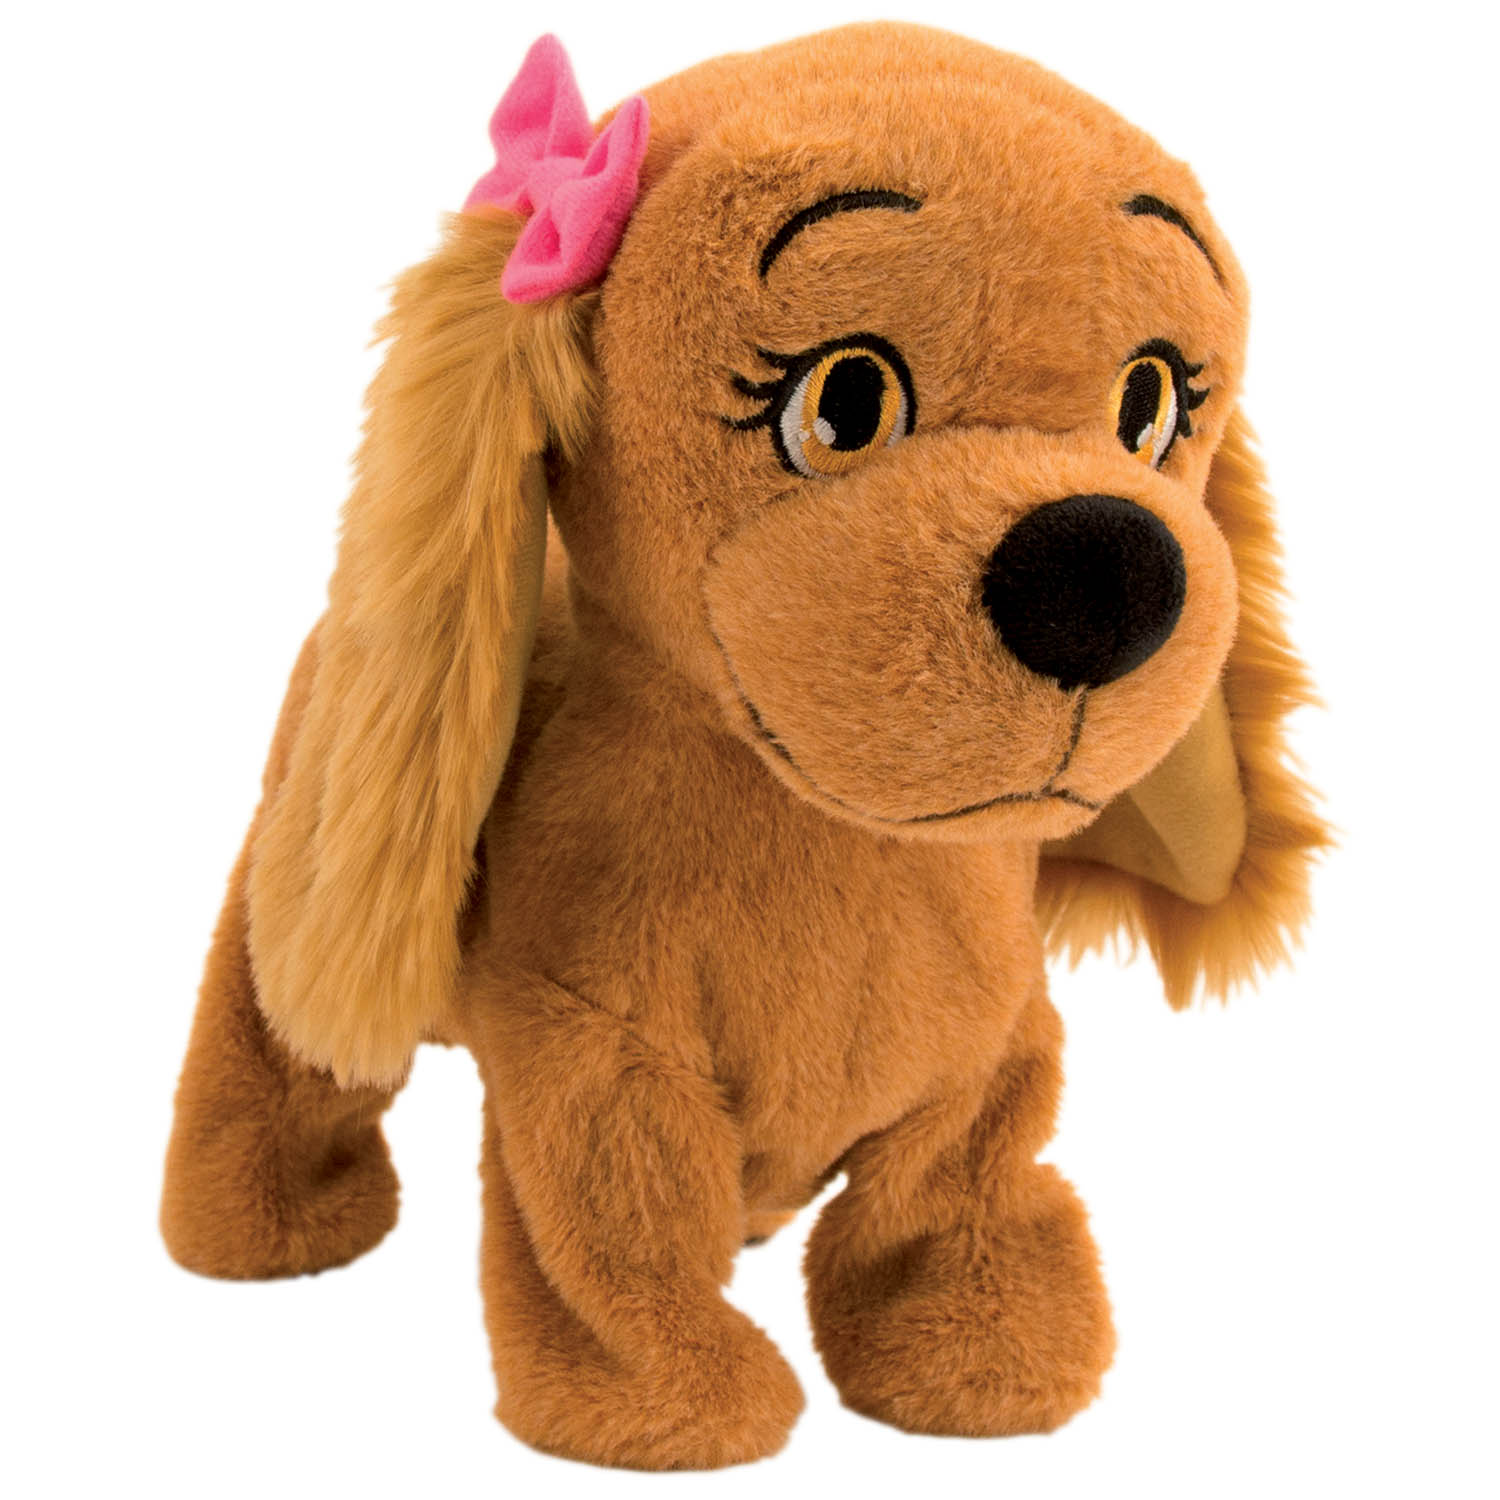 Lucy The Dog Kids Fun Interactive Toy Children Girls Soft Plush